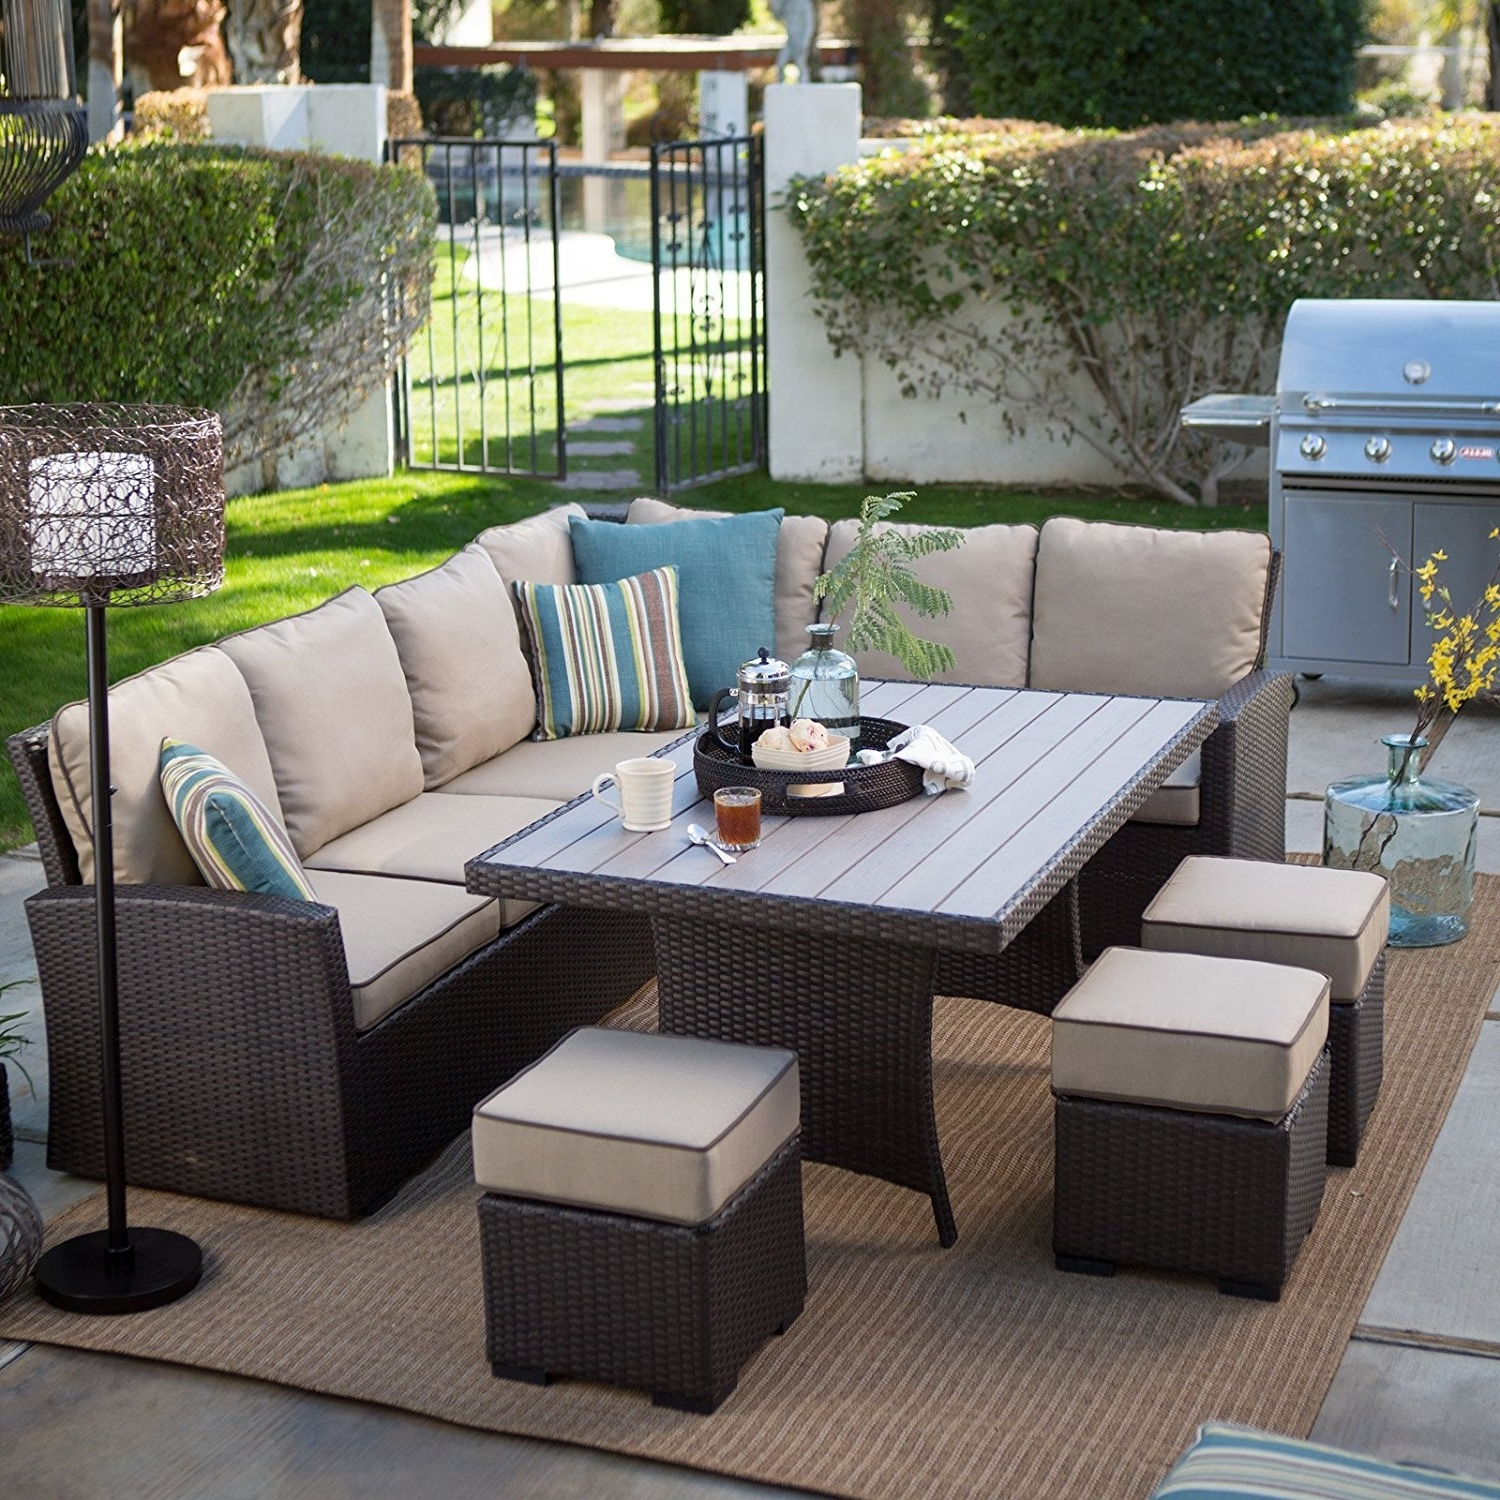 Current Patio Conversation Sets For Small Spaces With Regard To Small Conversation Area Ideas Patio Furniture Walmart Patio (View 3 of 15)